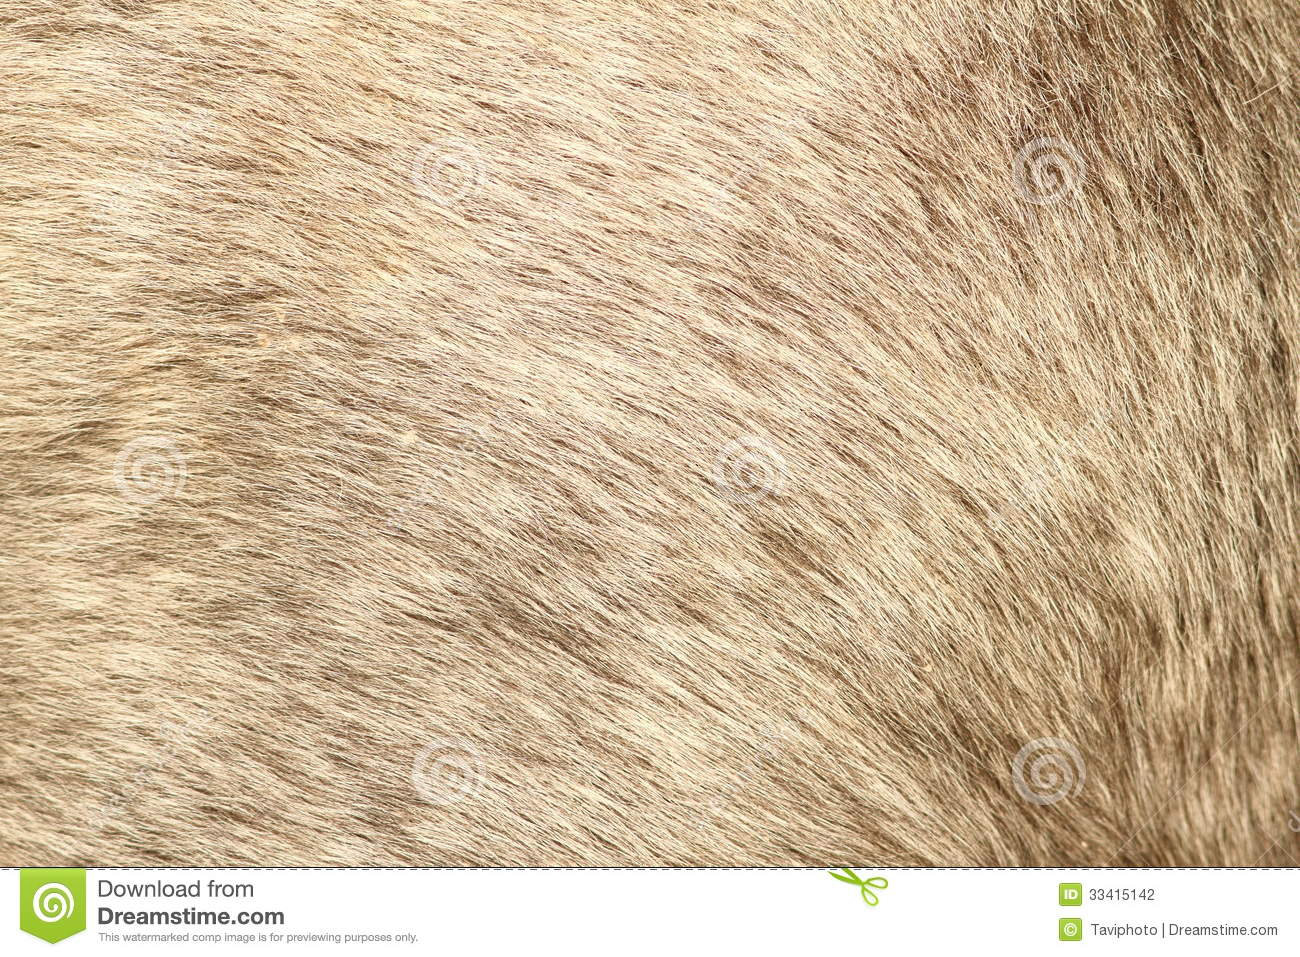 Fur Texture Of A Short Hair Pony Stock Photo Image 33415142